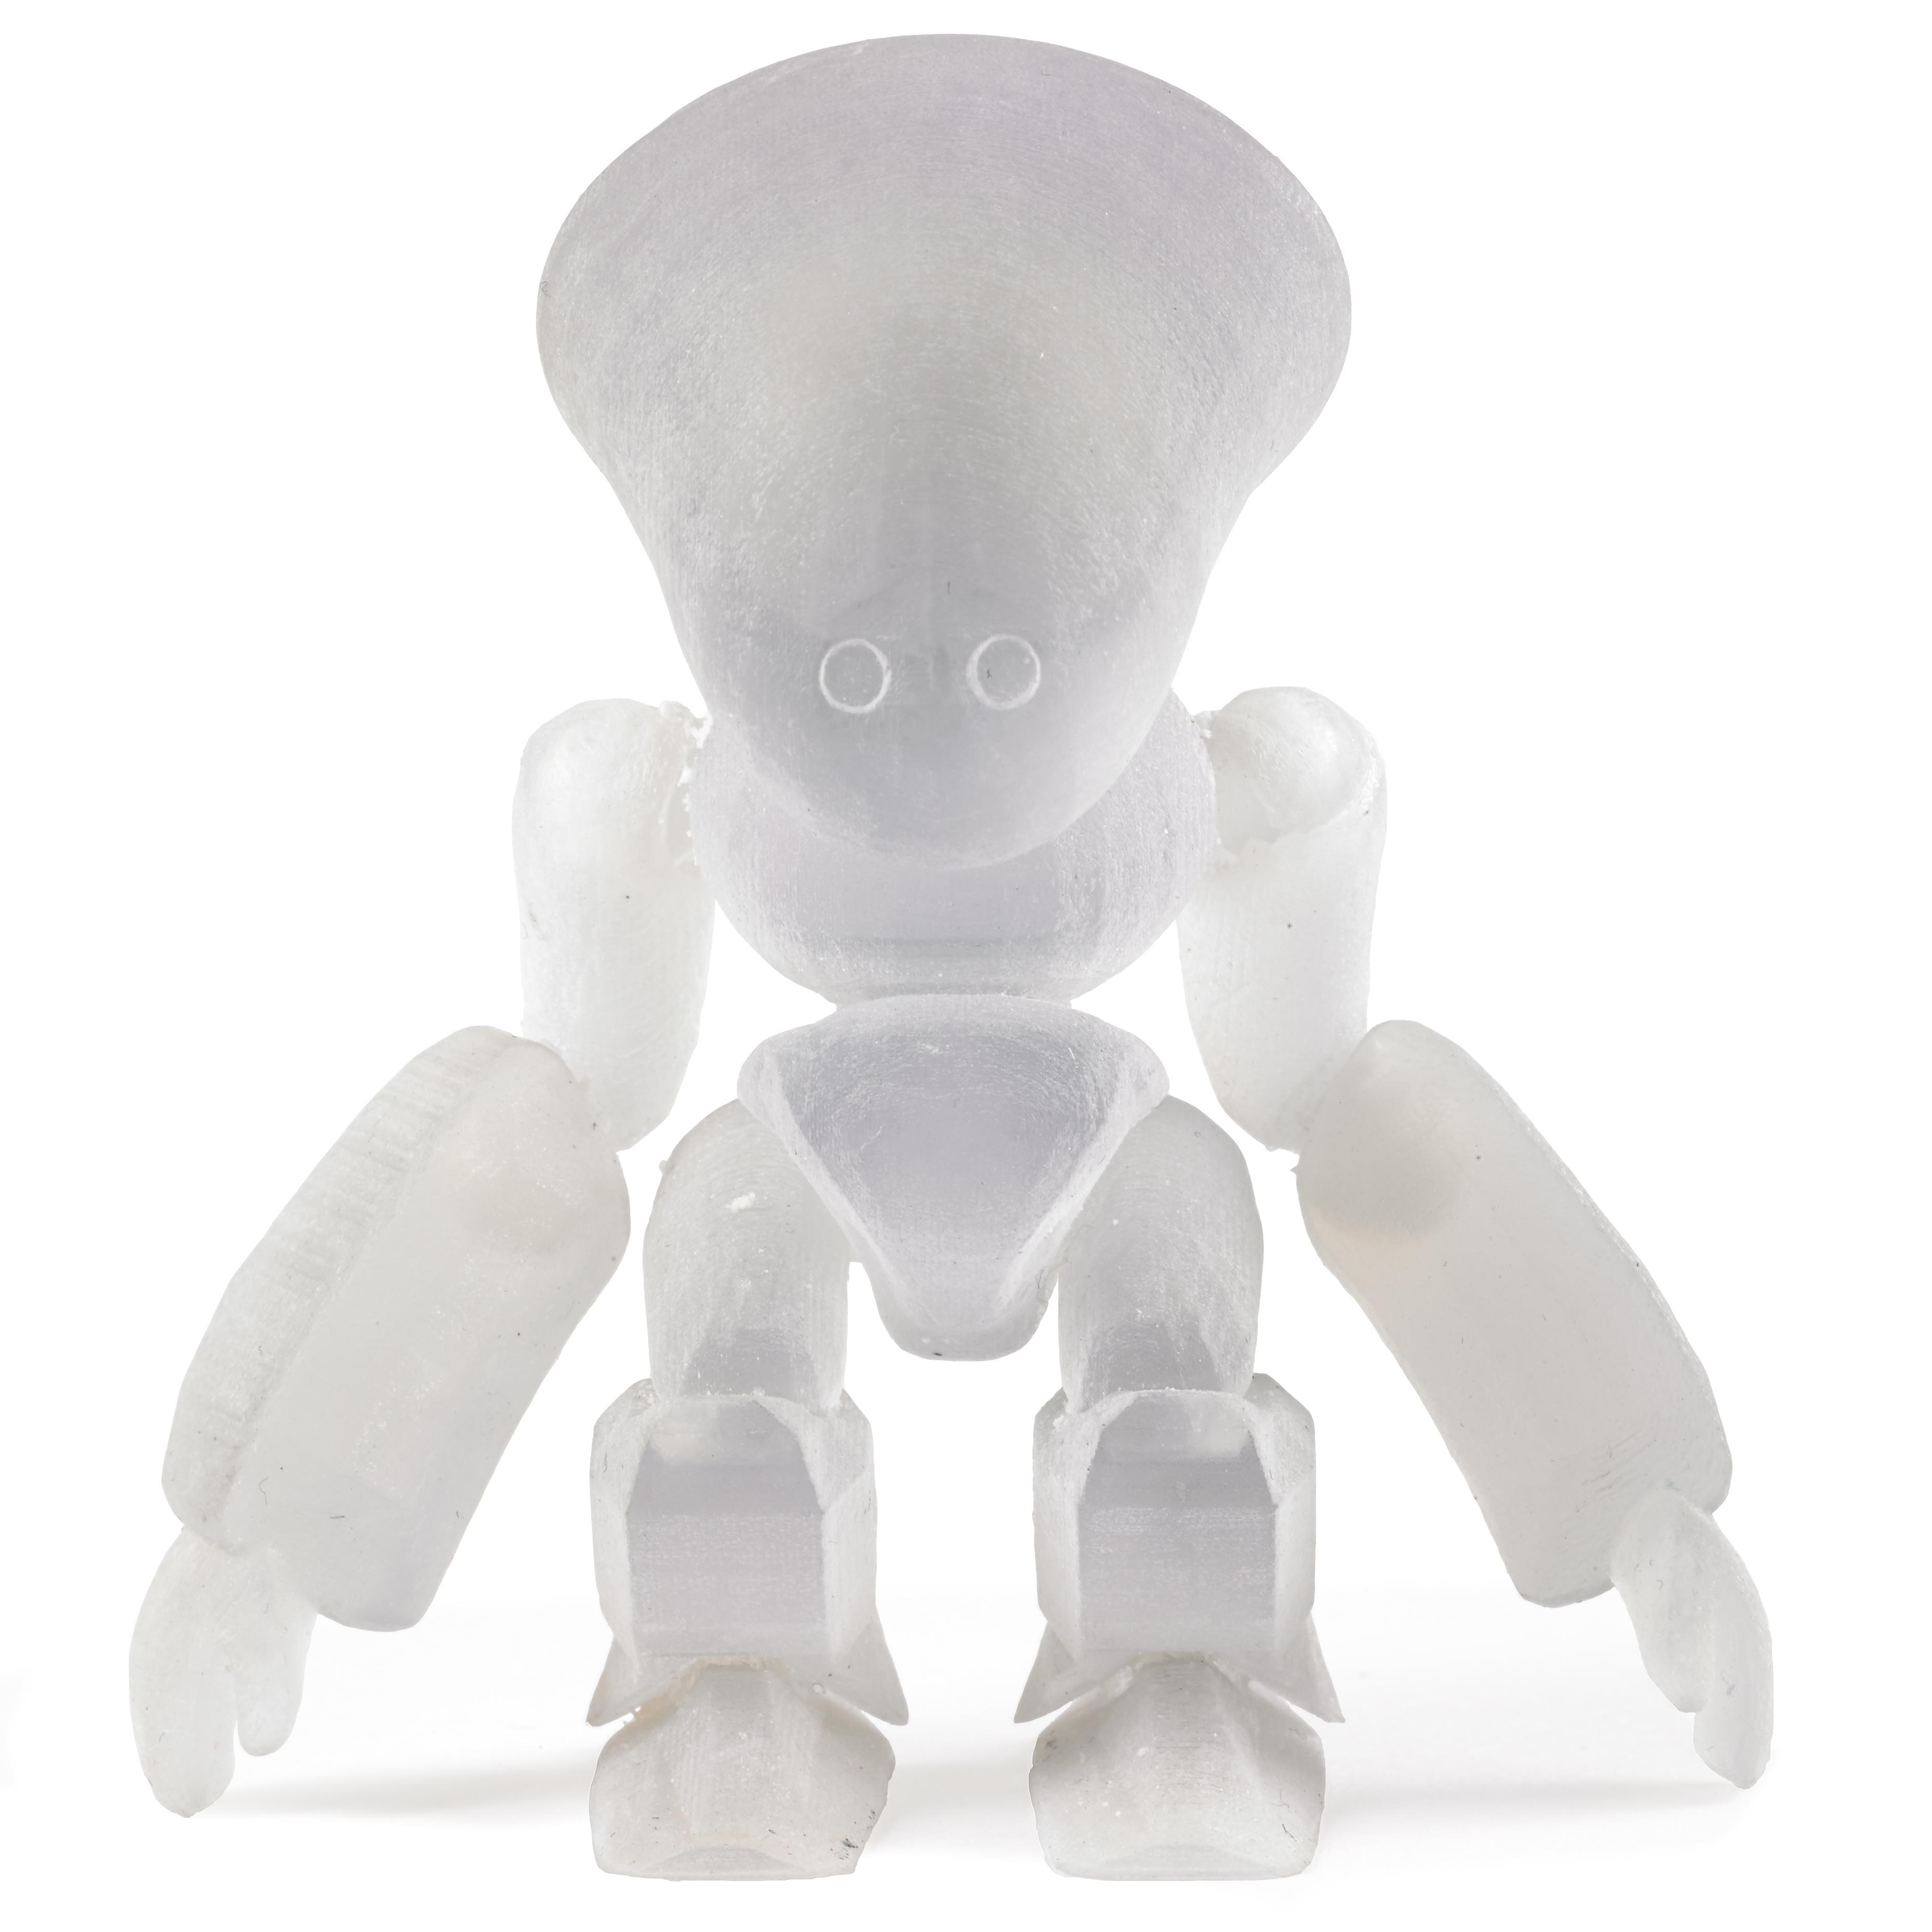 Introducing 3D Printing Of New Translucent Resin Material